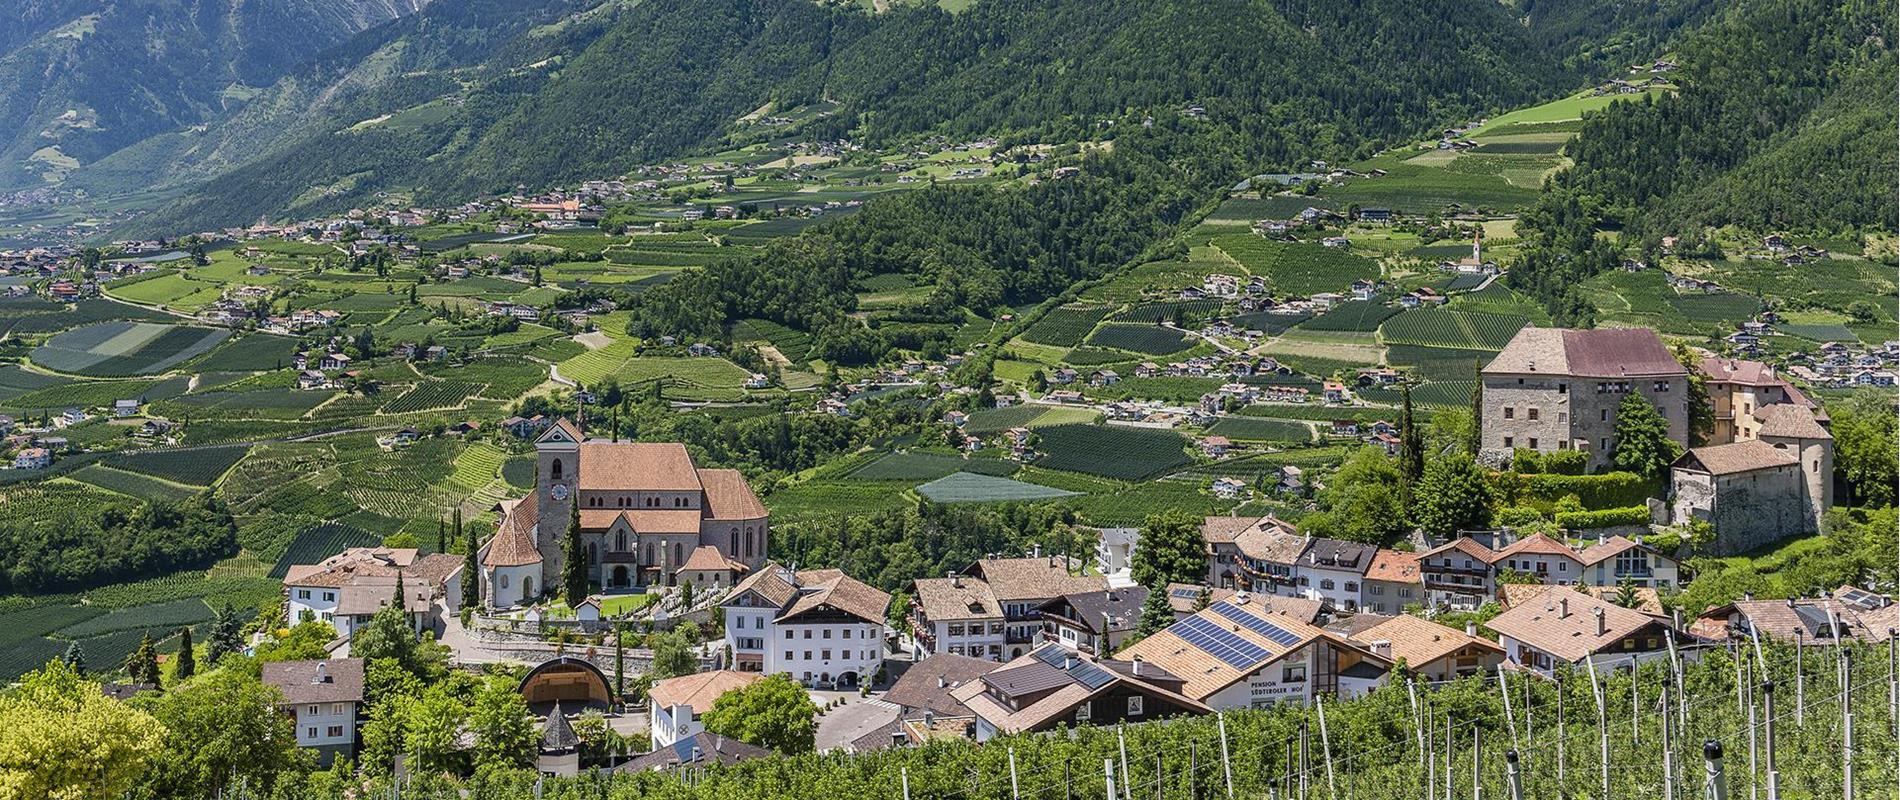 Directions and other Travel Services for Your Holiday in Scena near Merano